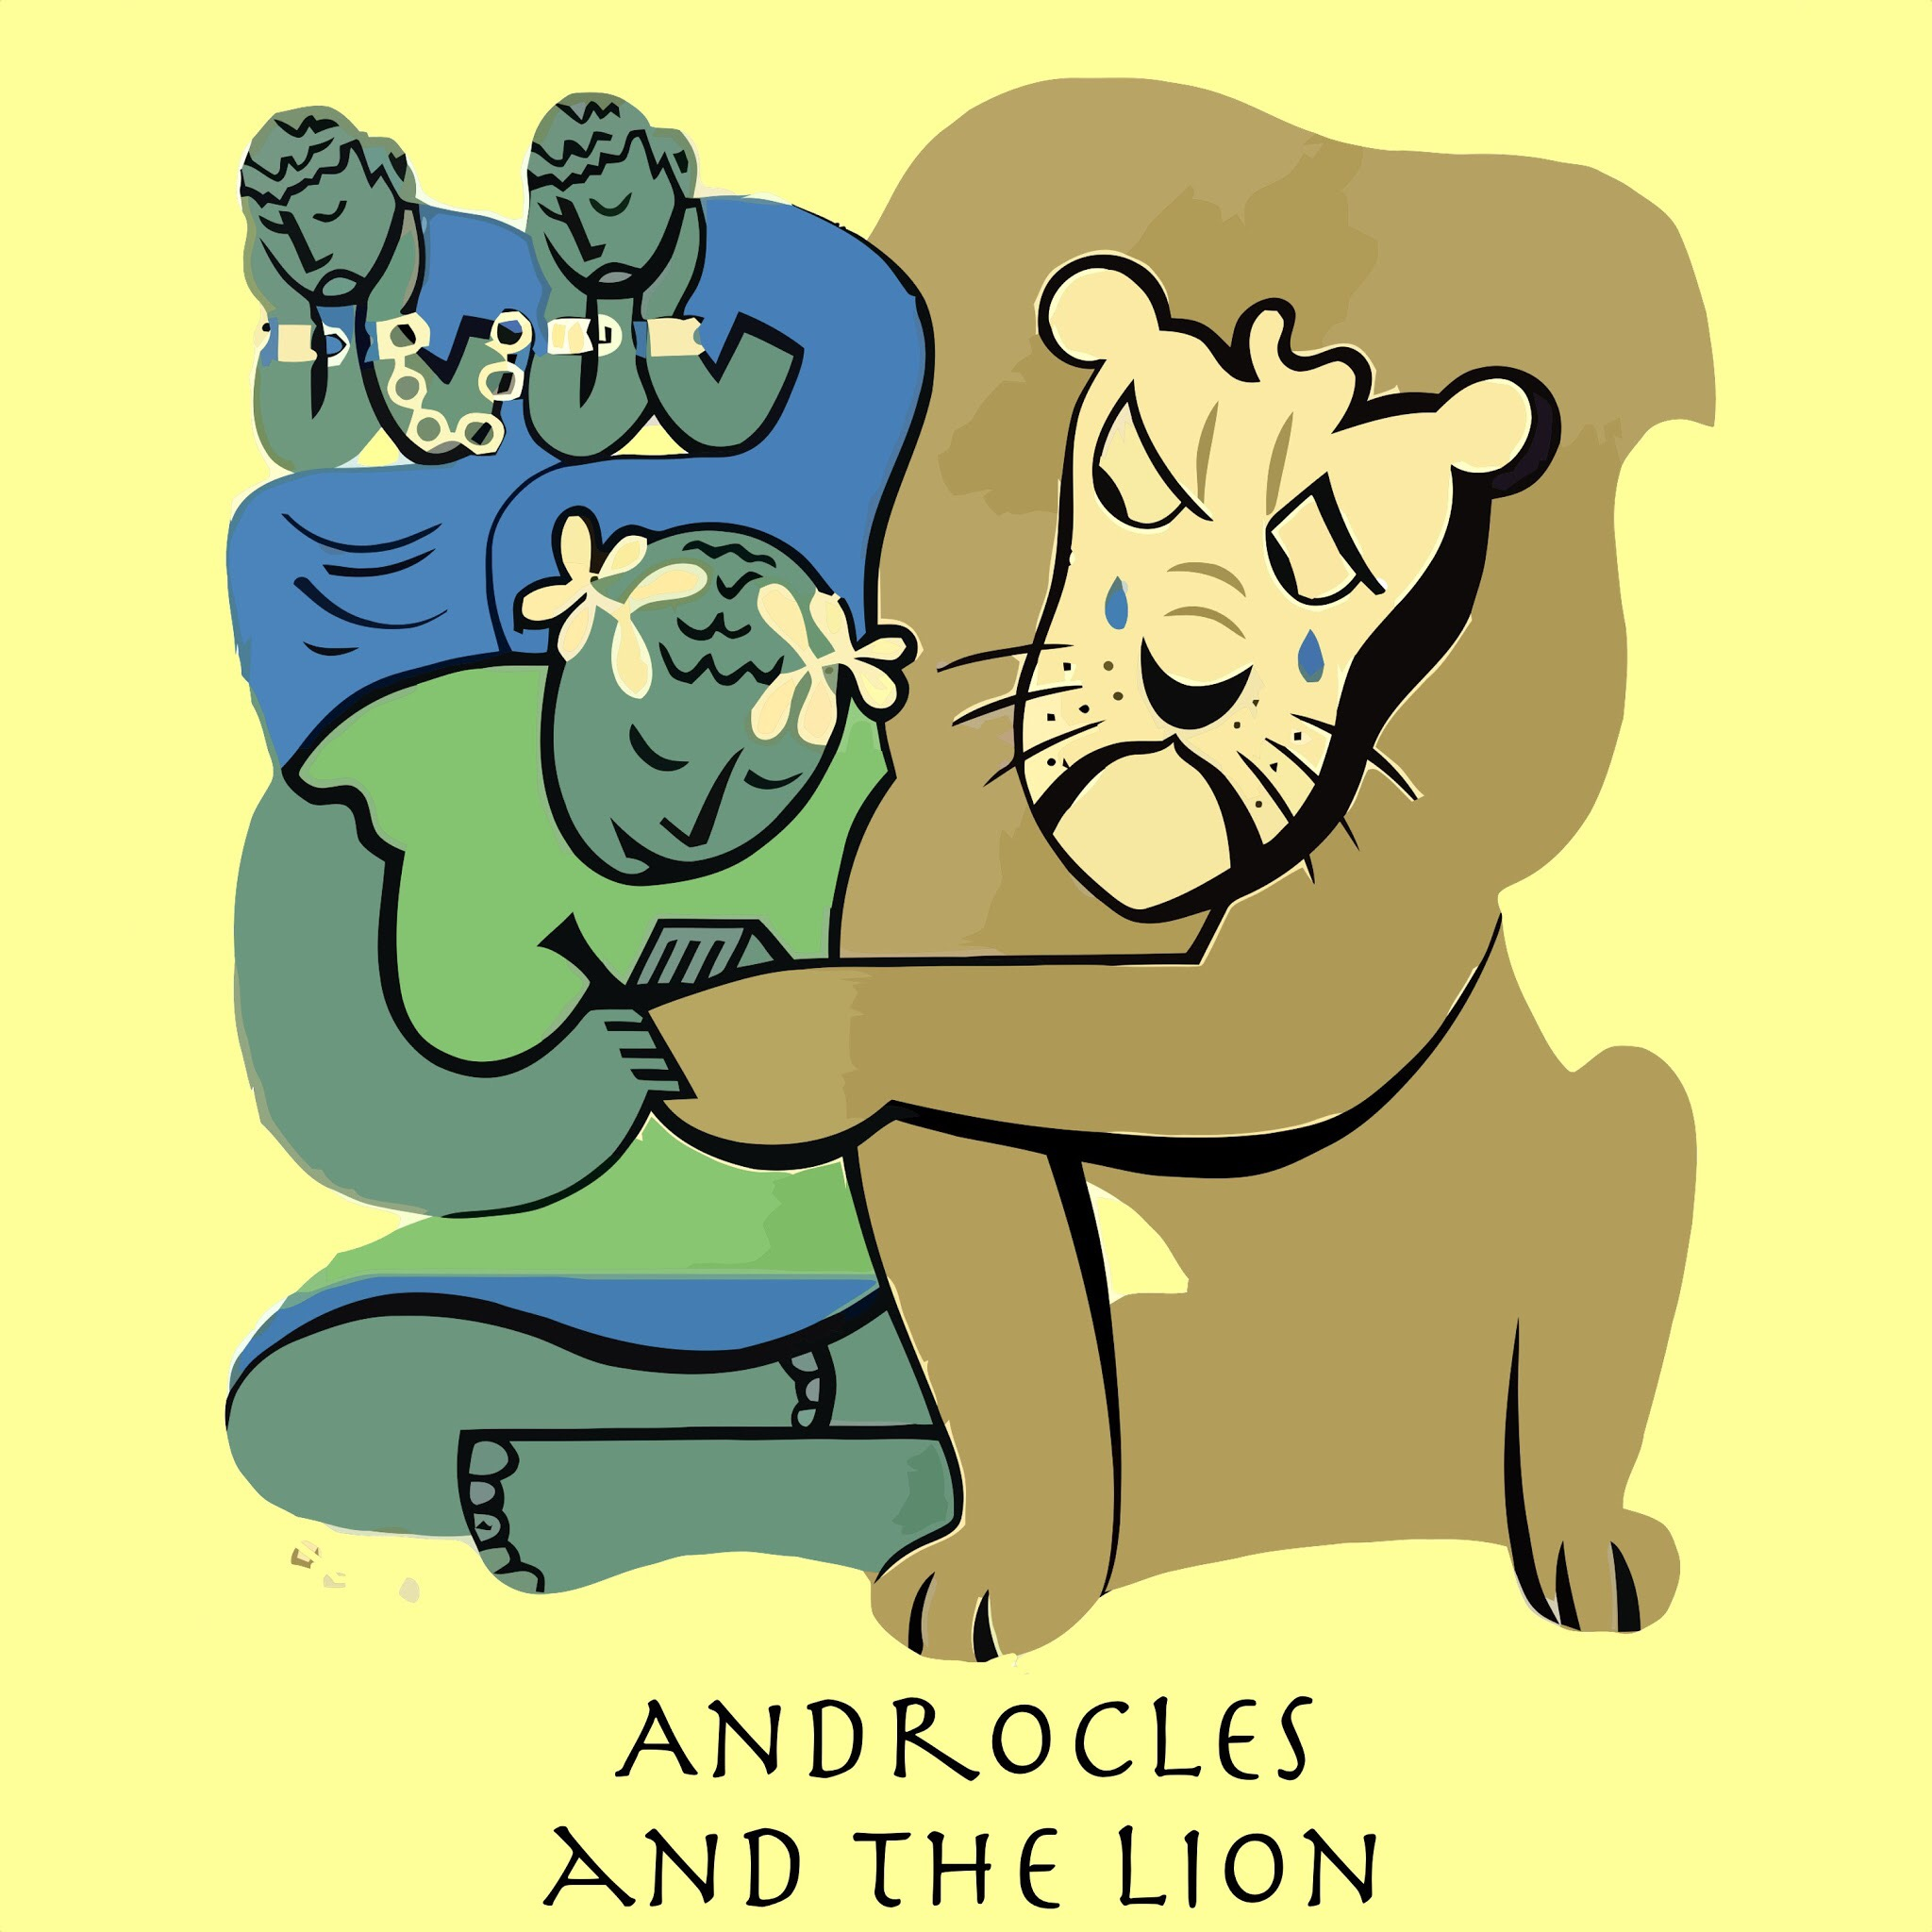 Androcles and the Lion - Storynory